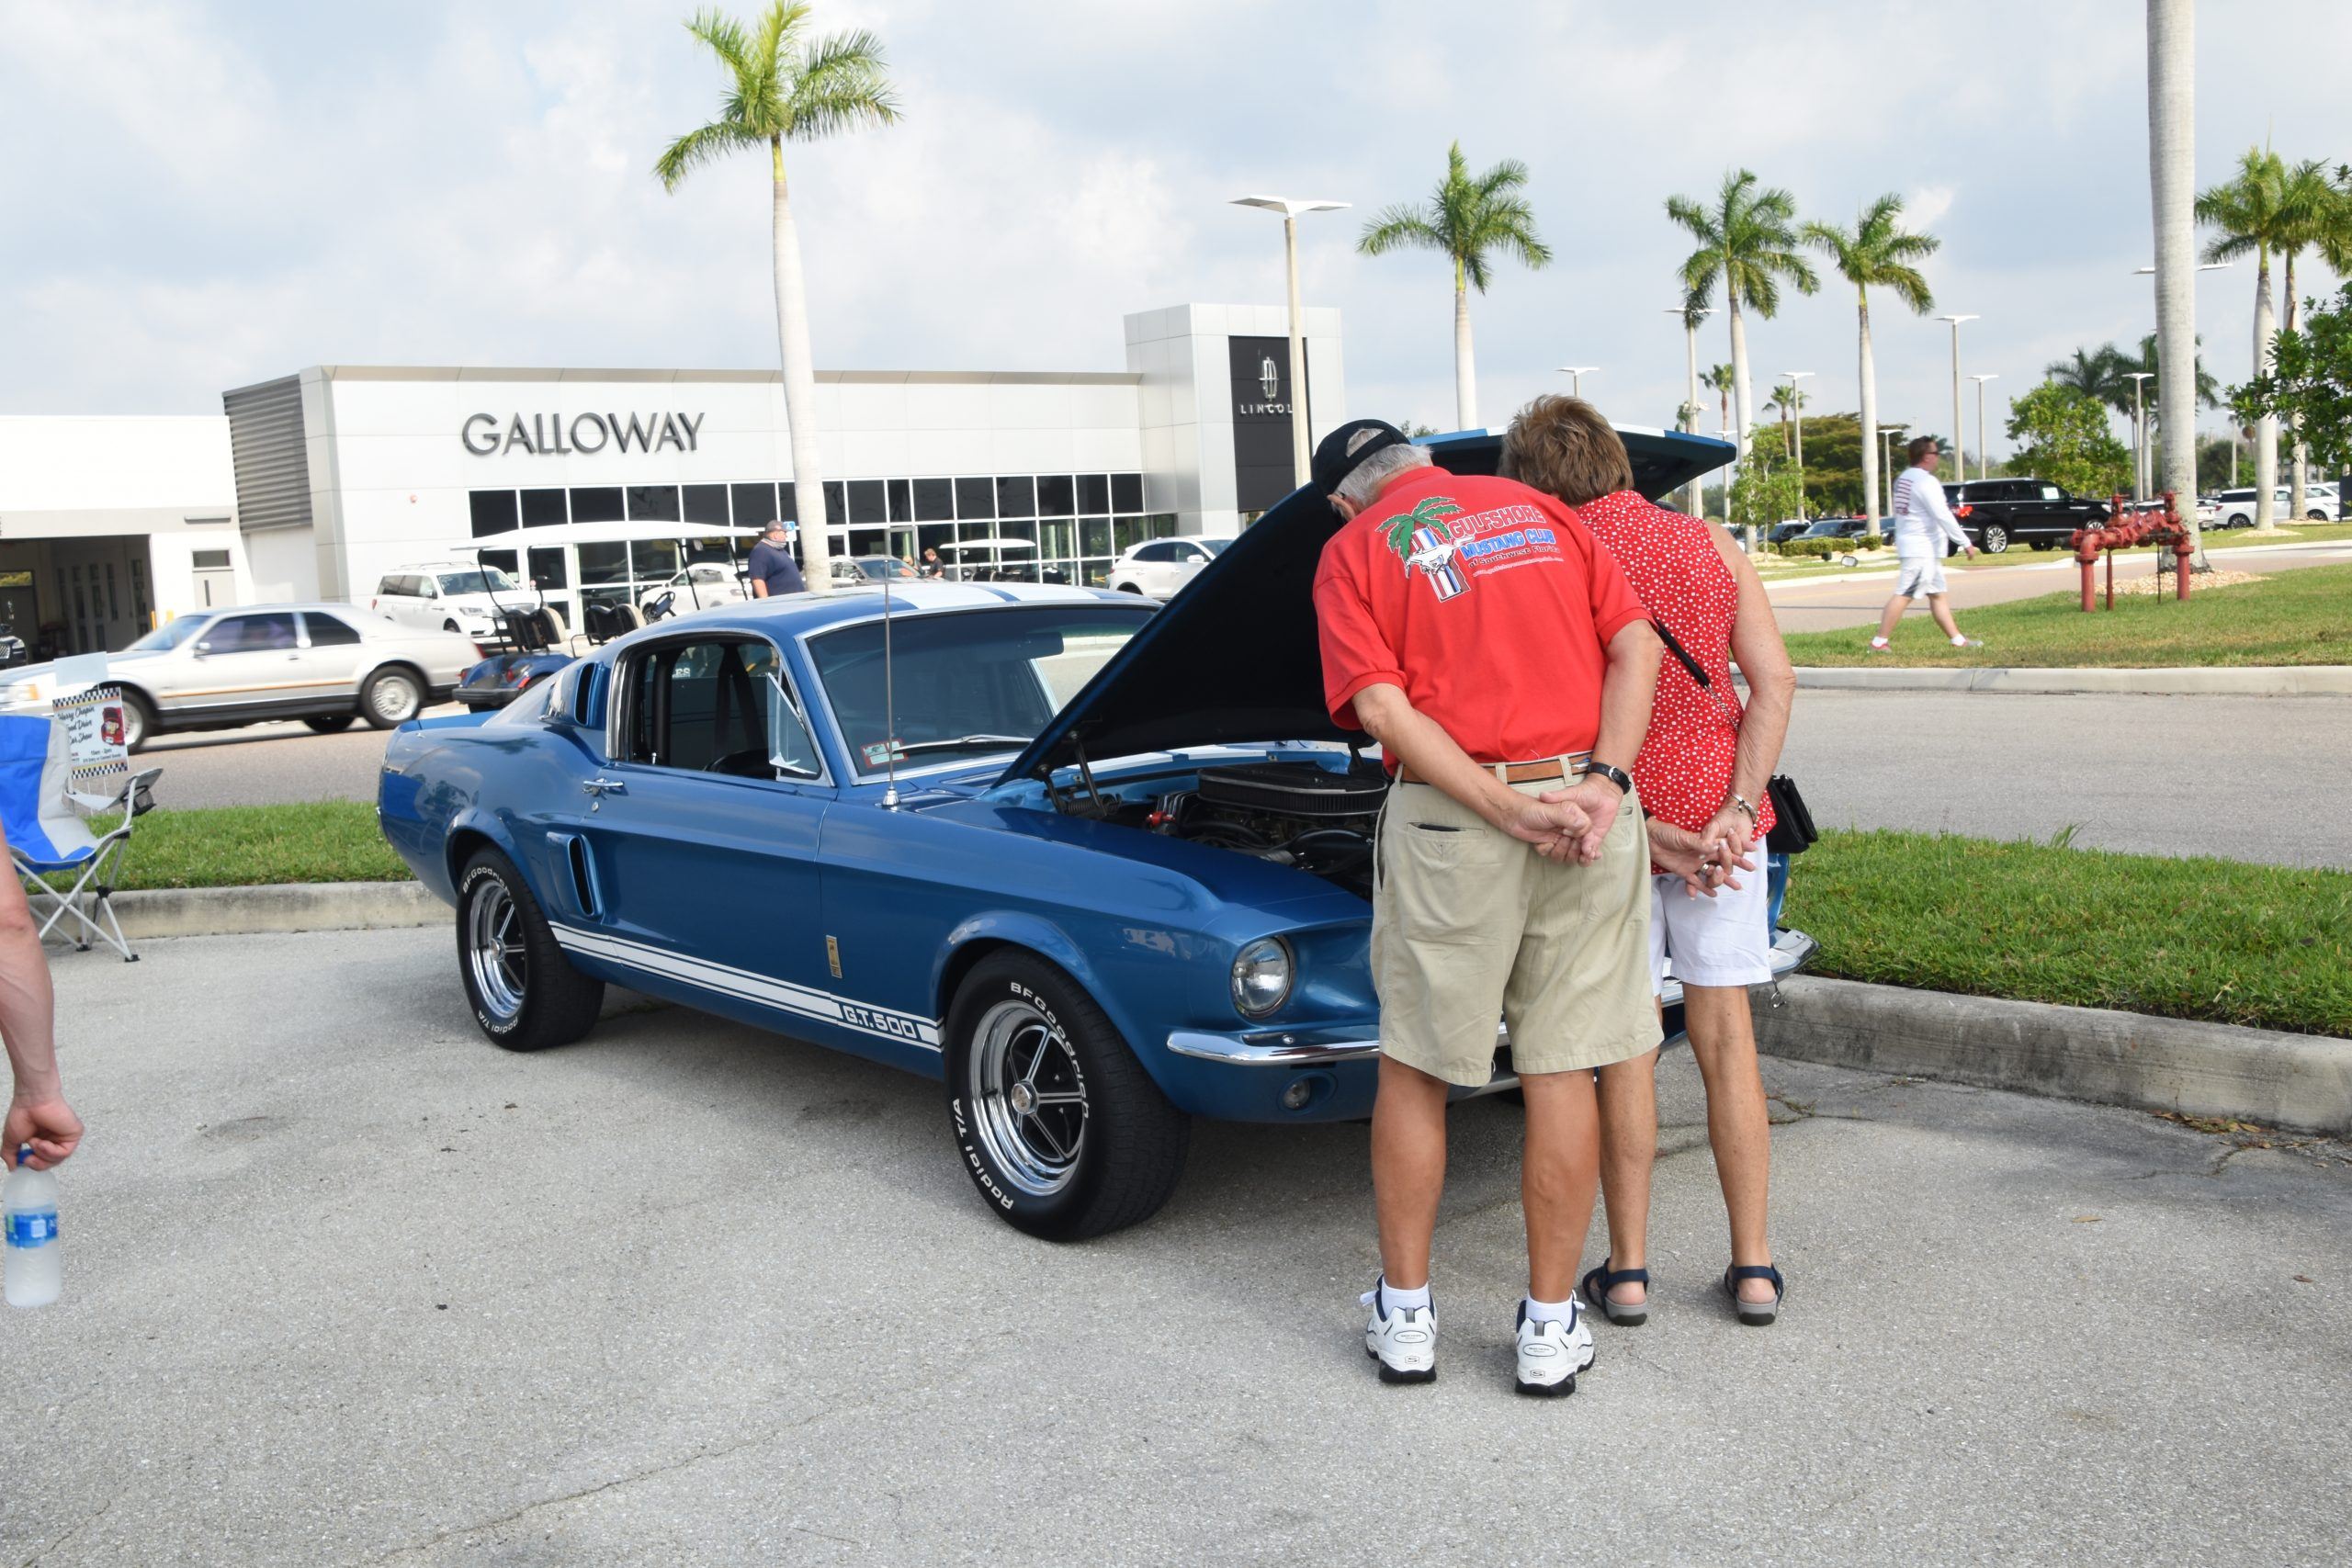 Two mustang club members looking at a Shelby mustang